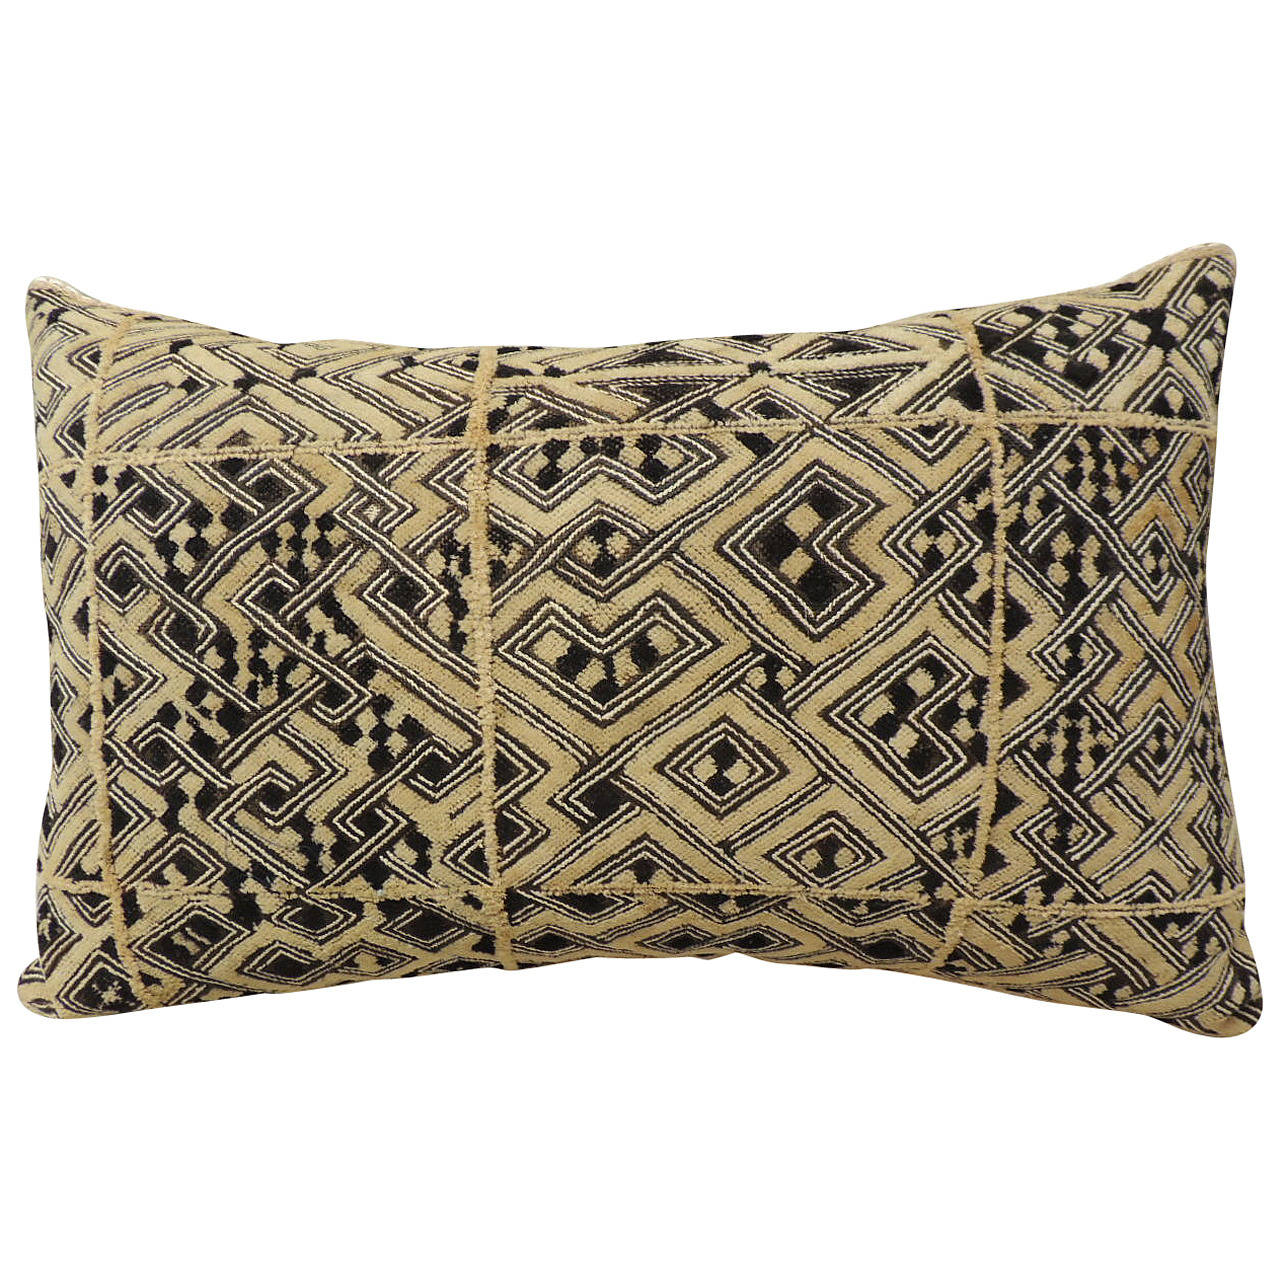 Large Decorative Bolster Pillows : African Patchwork Large Bolster Pillow at 1stdibs